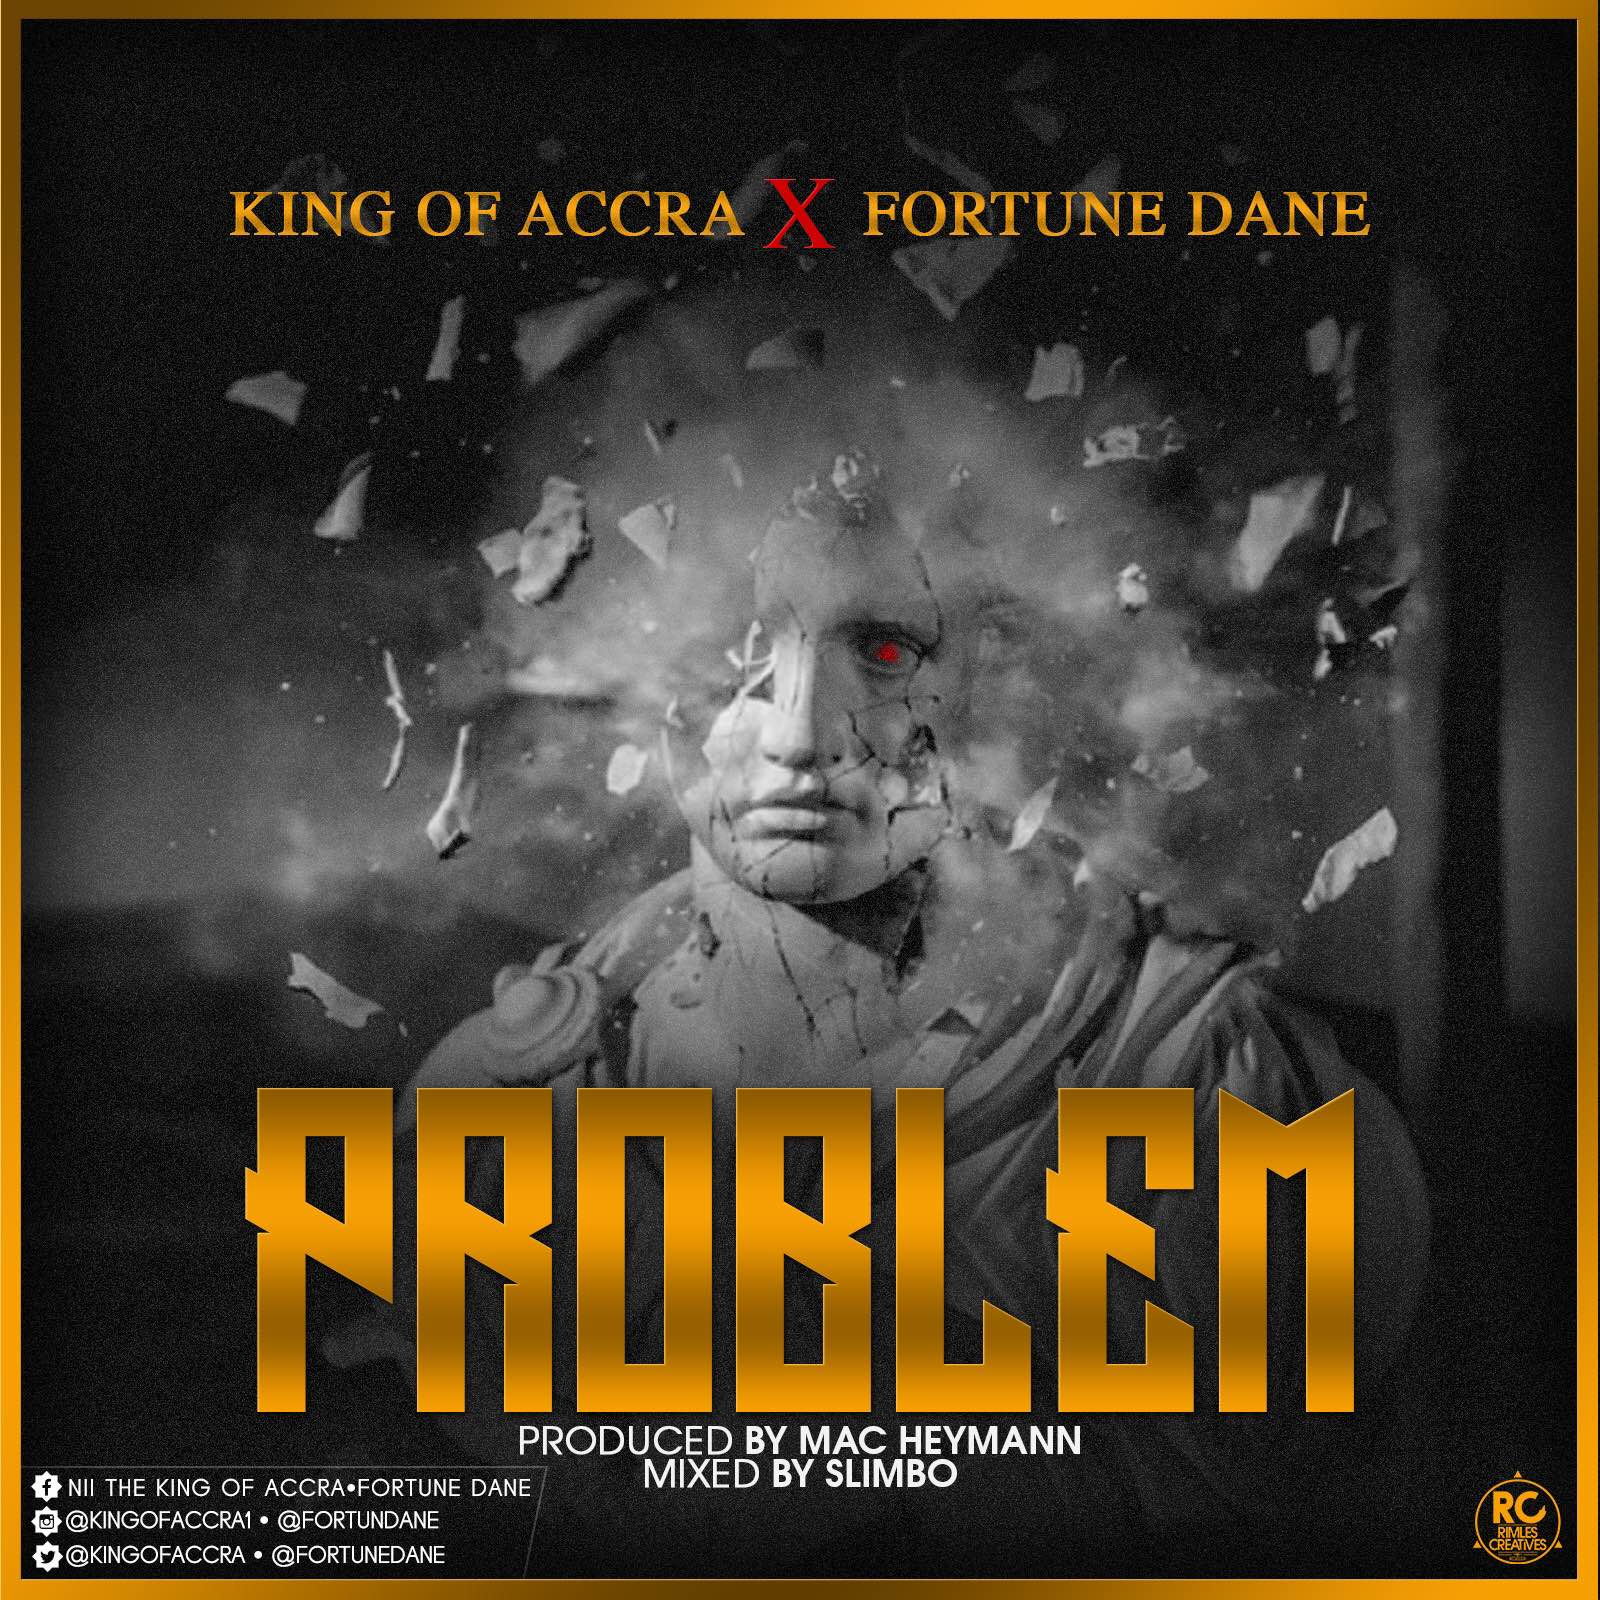 King Of Accra X Fortune Dane - Problem (Prod. By Mac Heymann Mixed By Slimbo)